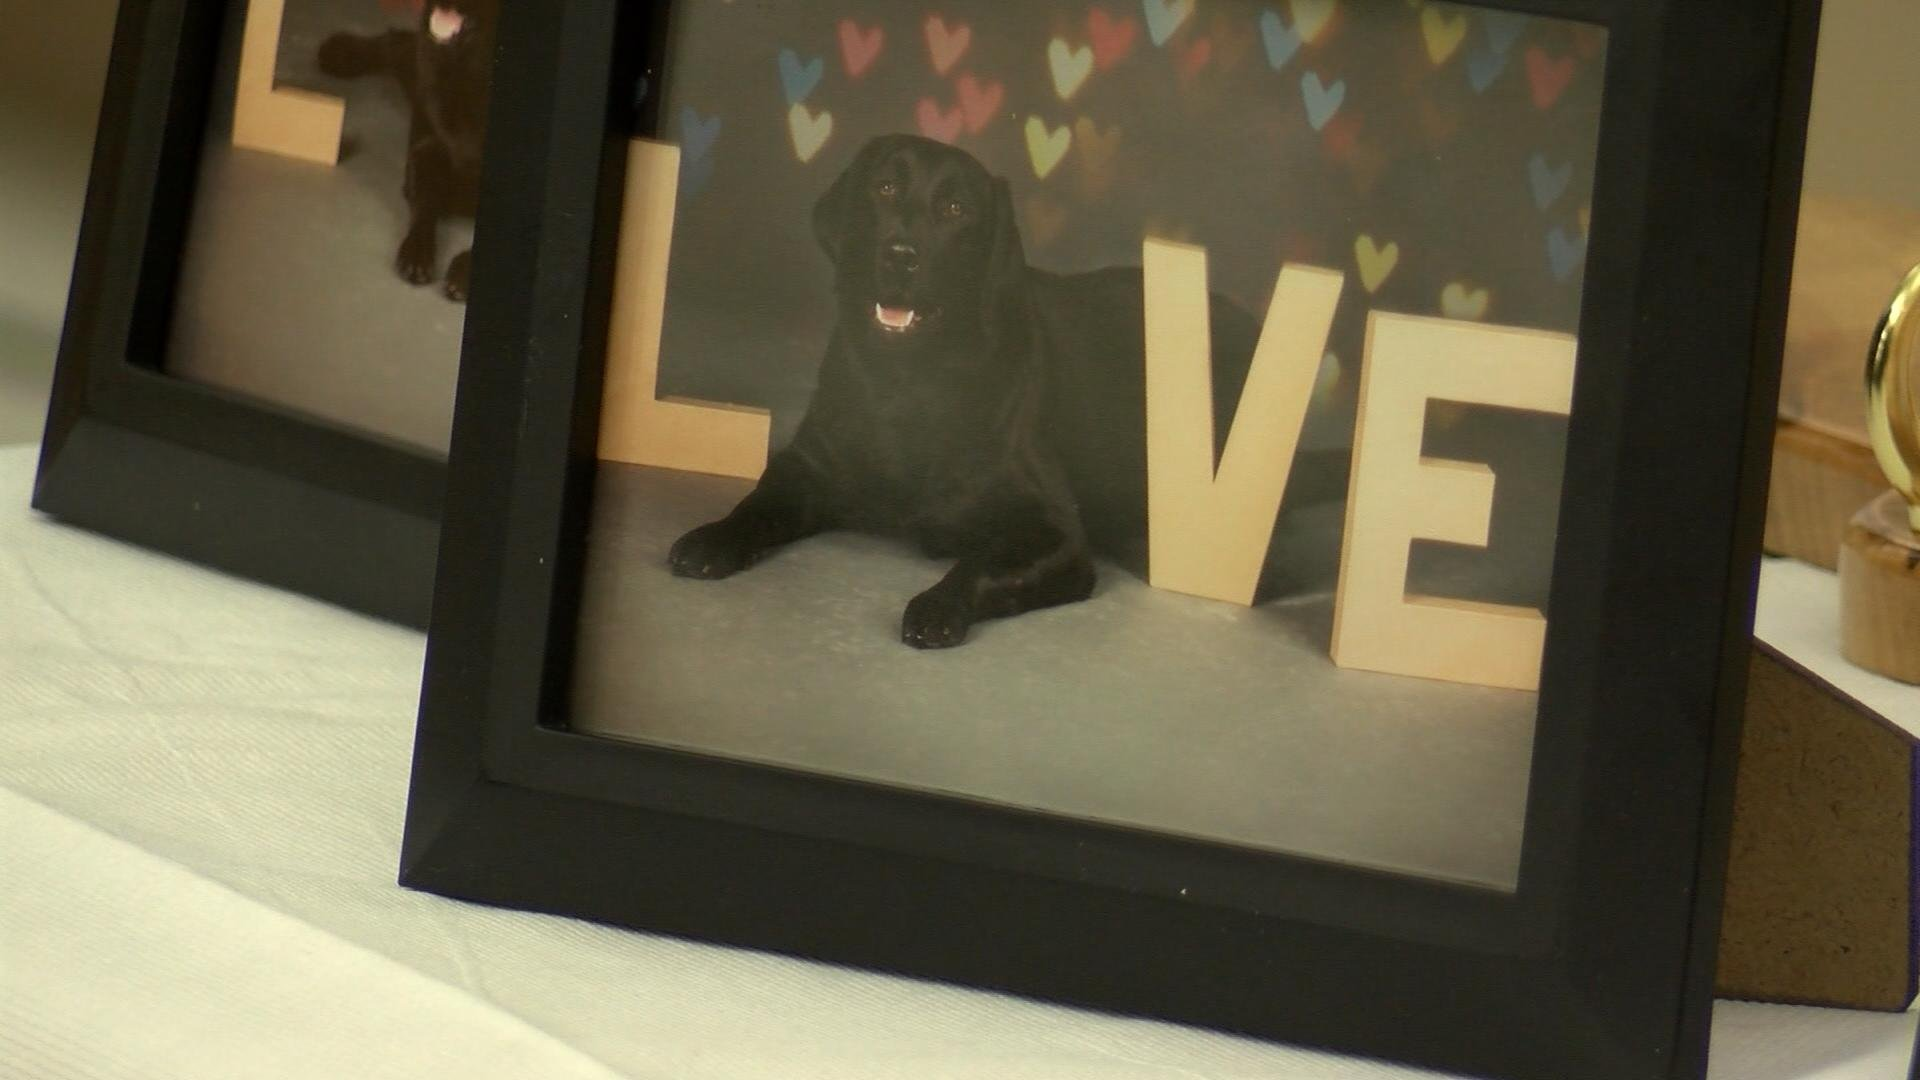 Photos of the service dogs displayed on a table.